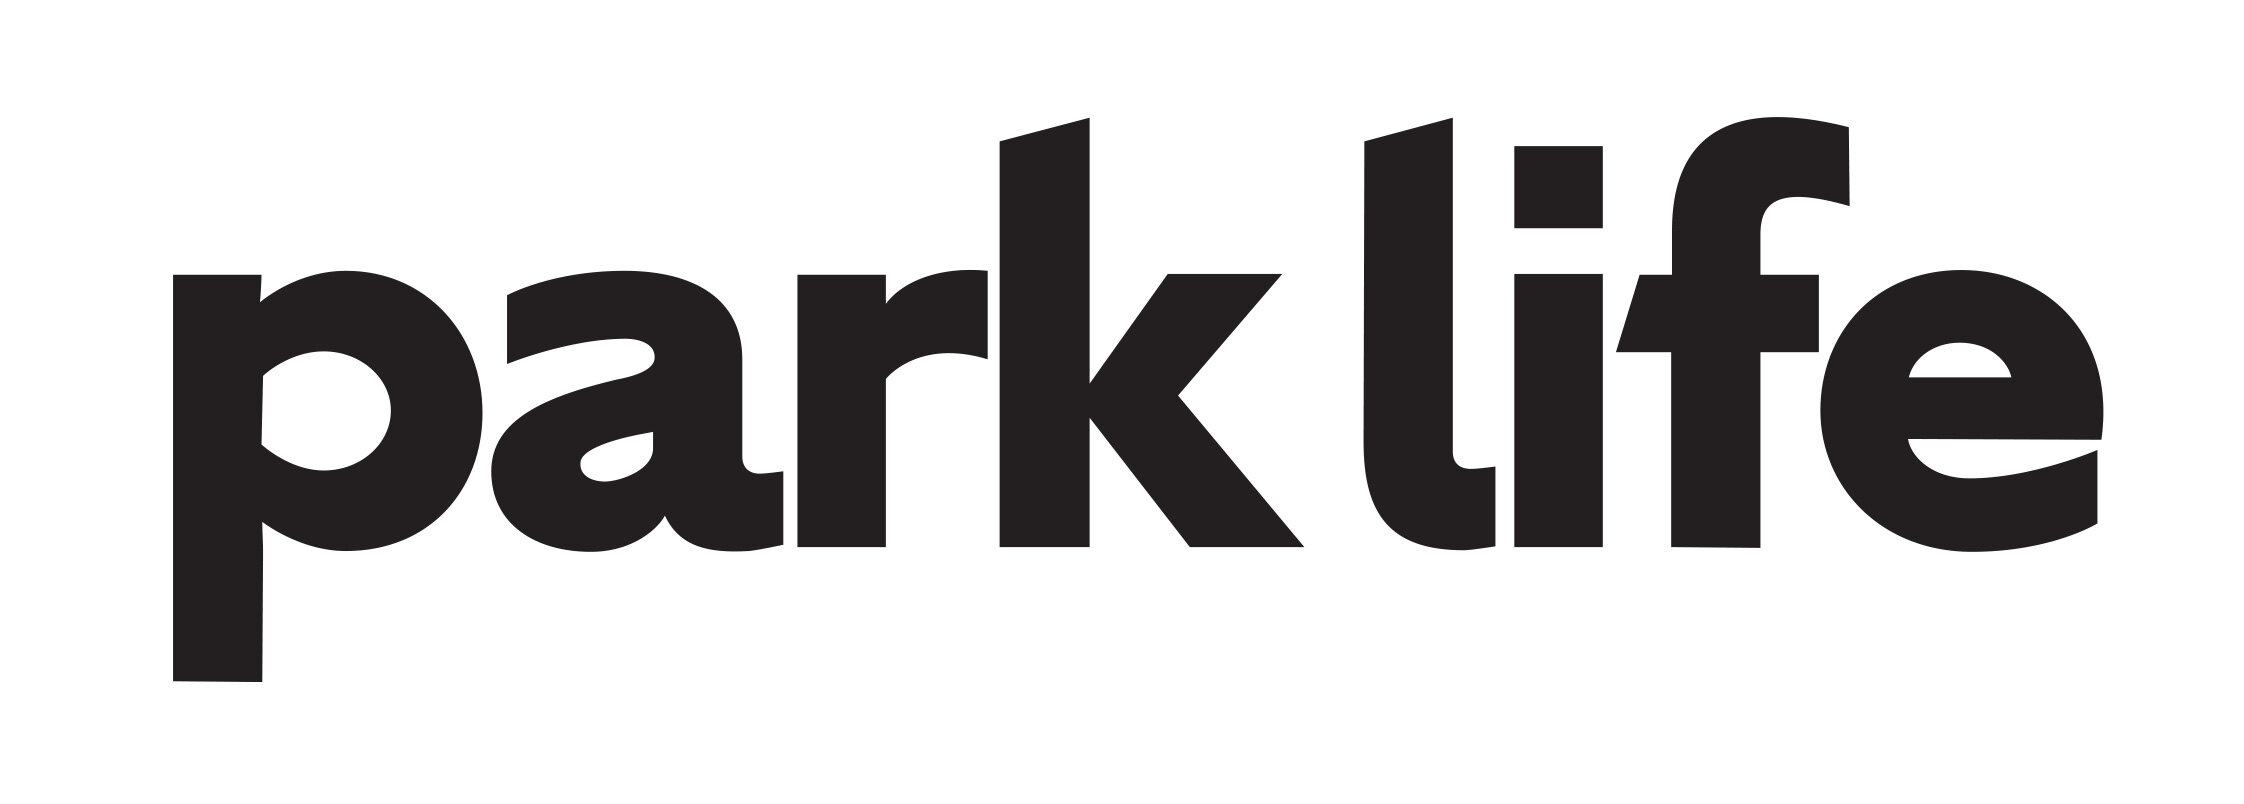 Parklife - Stop by this business to find out about their deal!